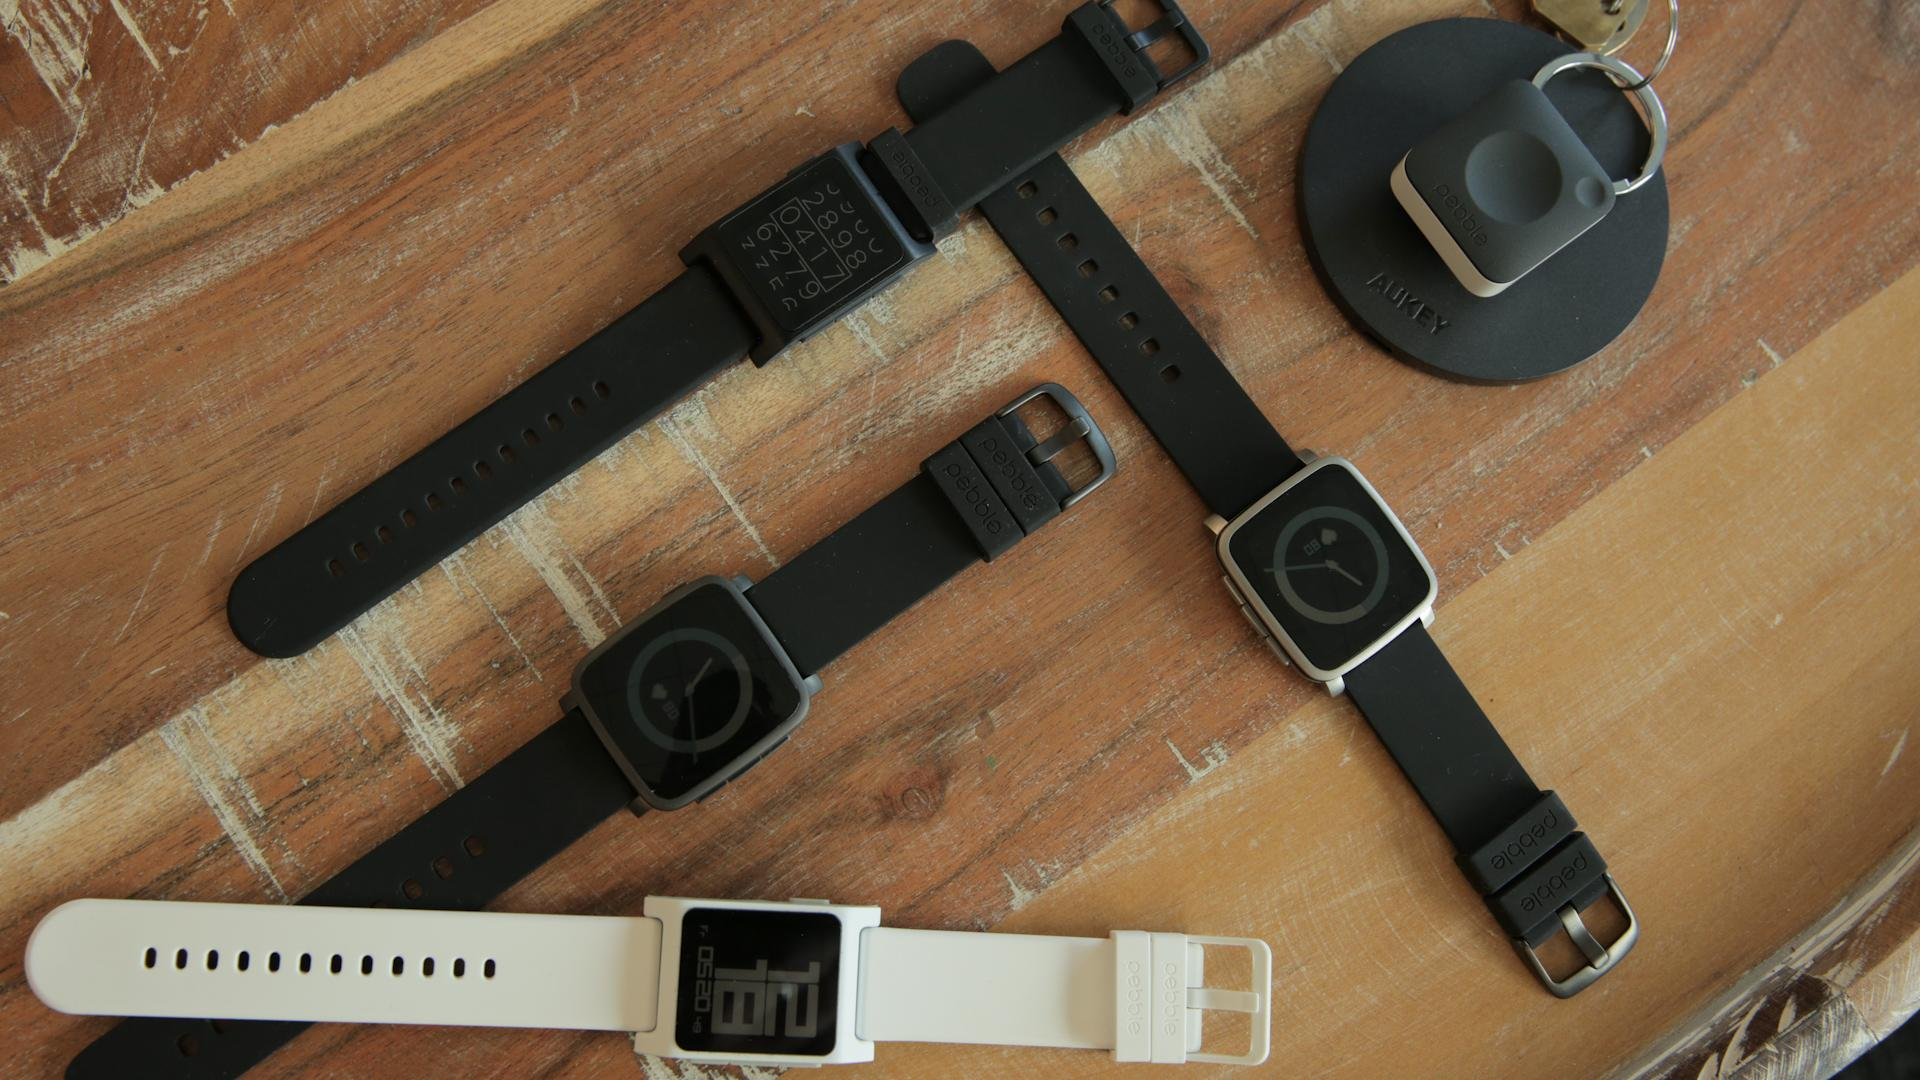 Pebble unveils two new smartwatches and a wearable not meant for your wrist